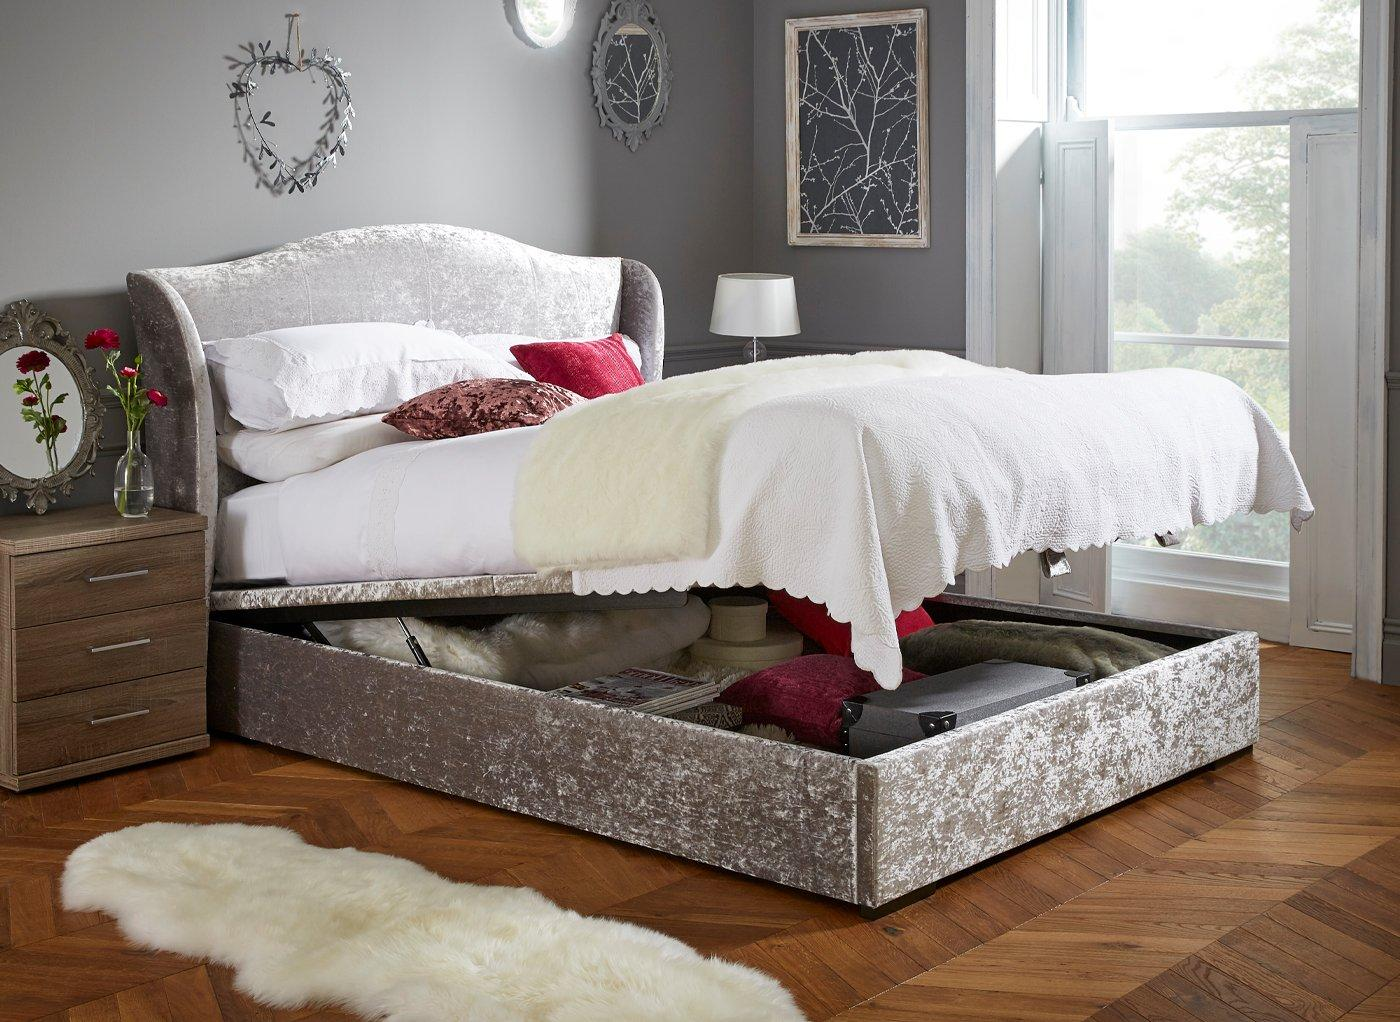 Dreams Showan Crushed Velvet Finish Upholstered Ottoman Bed Frame from £399